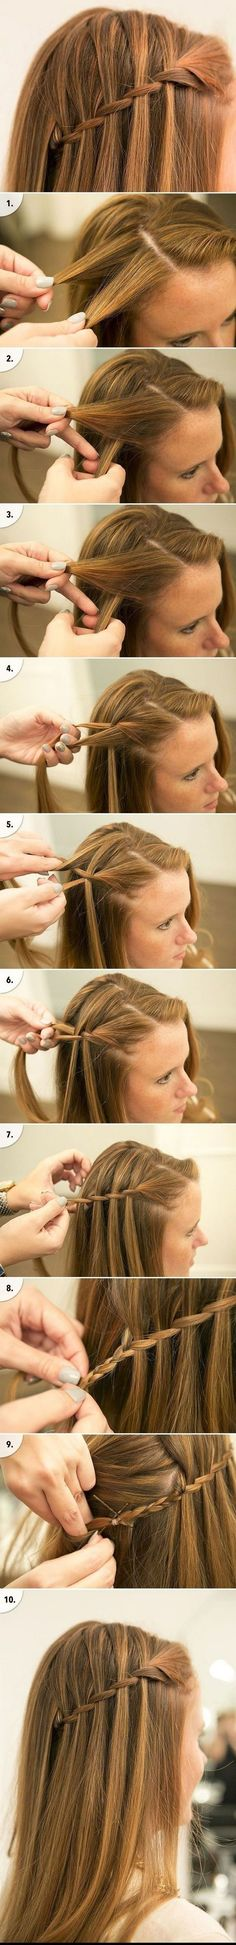 Fast Easy Formal Party Hairstyles for Long Hair DIY Ideas 2018 . - Fast simple formal party hairstyles for long hair DIY ideas 2018 # formal - Party Hairstyles For Long Hair, Hairstyles For School, Trendy Hairstyles, Wedding Hairstyles, Beautiful Hairstyles, School Hairdos, Long Haircuts, Everyday Hairstyles, School Braids